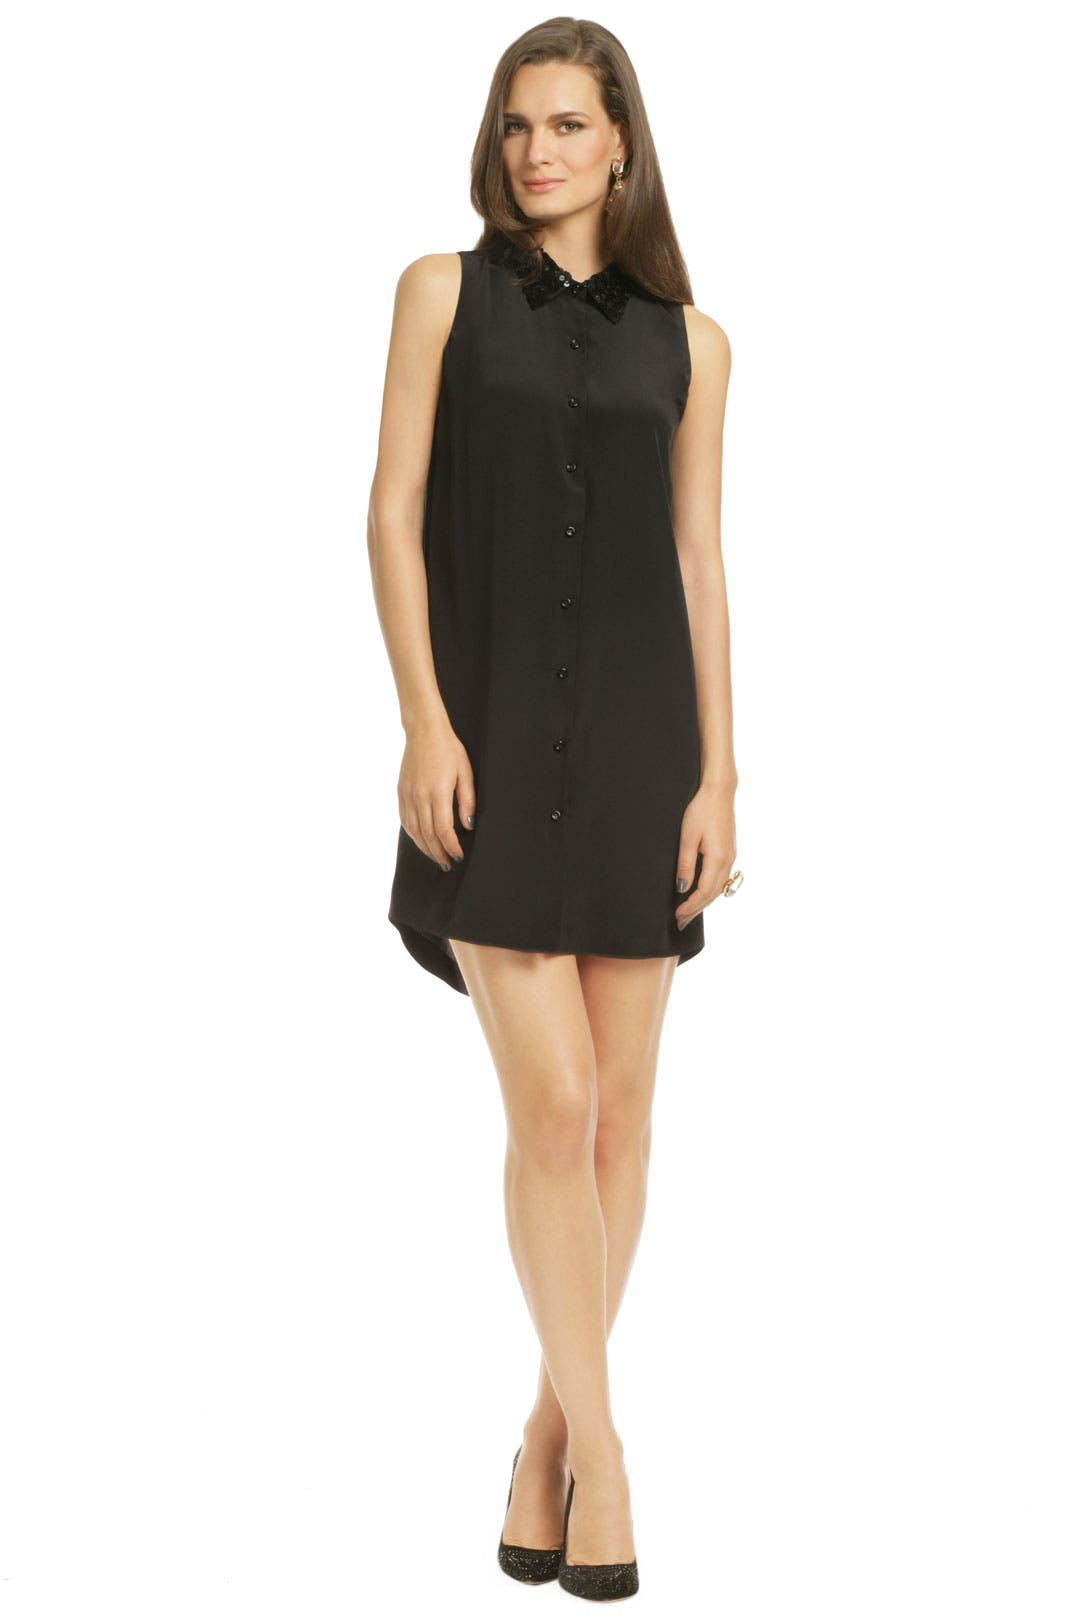 Phantom Sequin Shirt Dress by kate spade new york